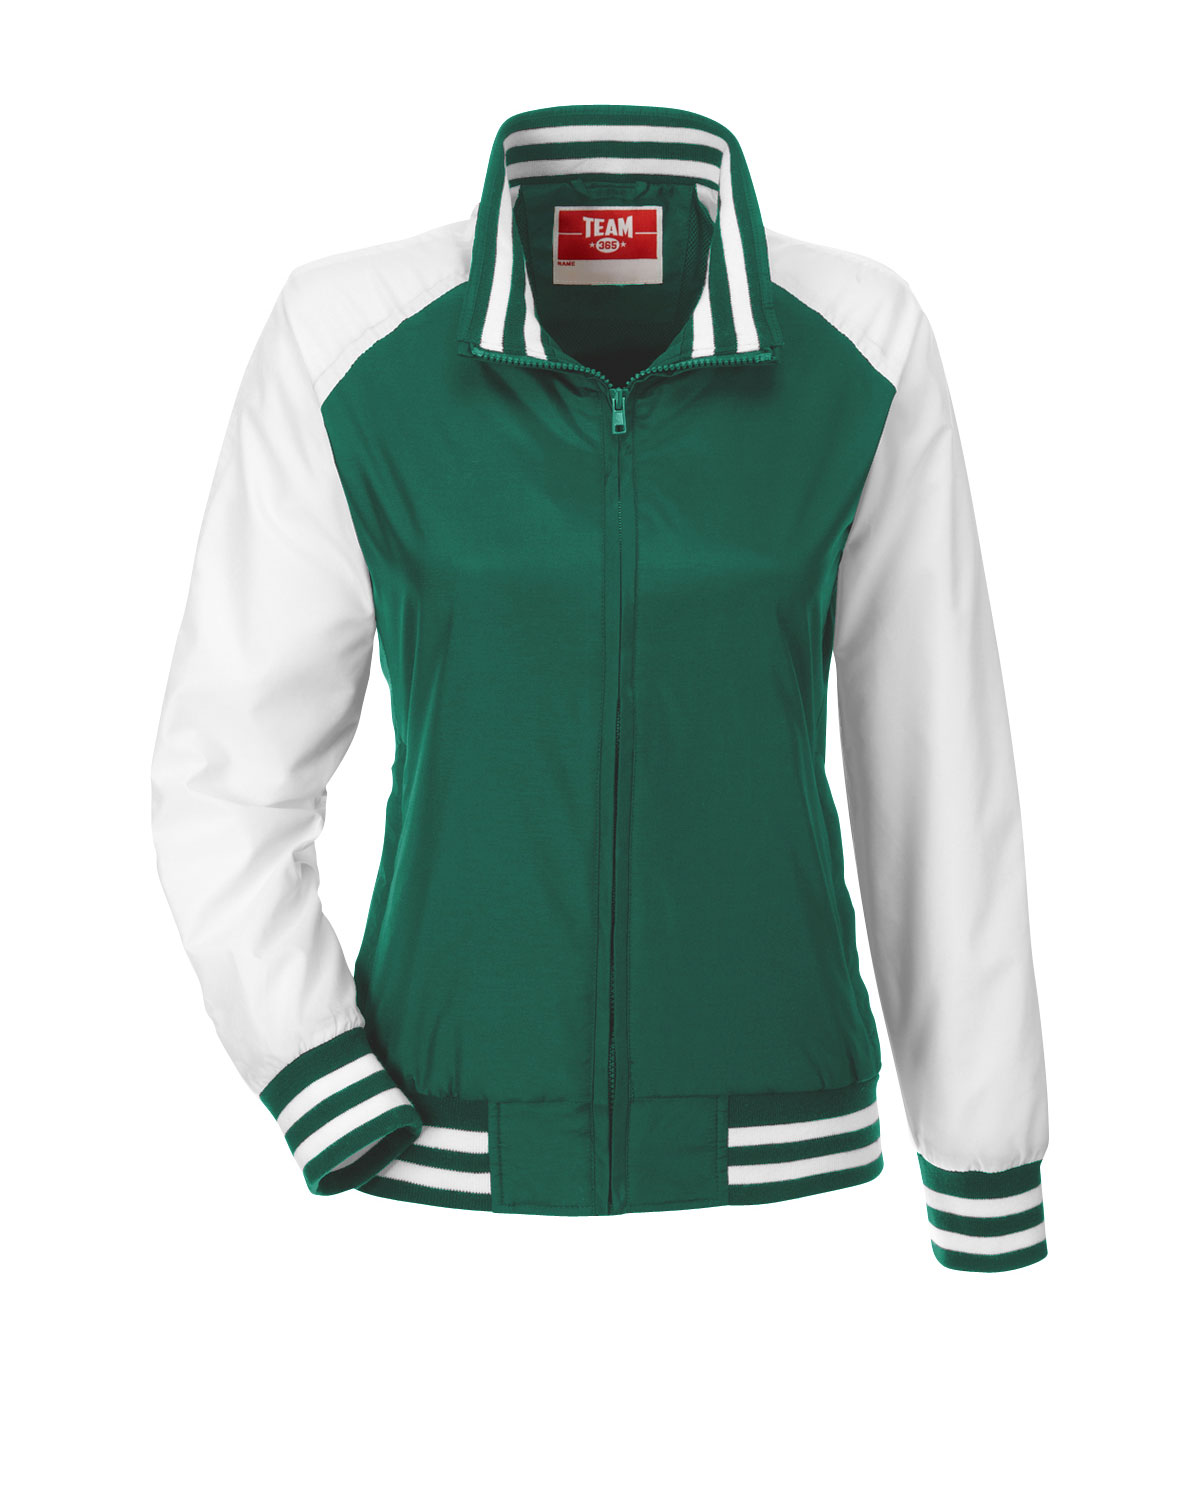 Team 365 Ladies Championship Jacket